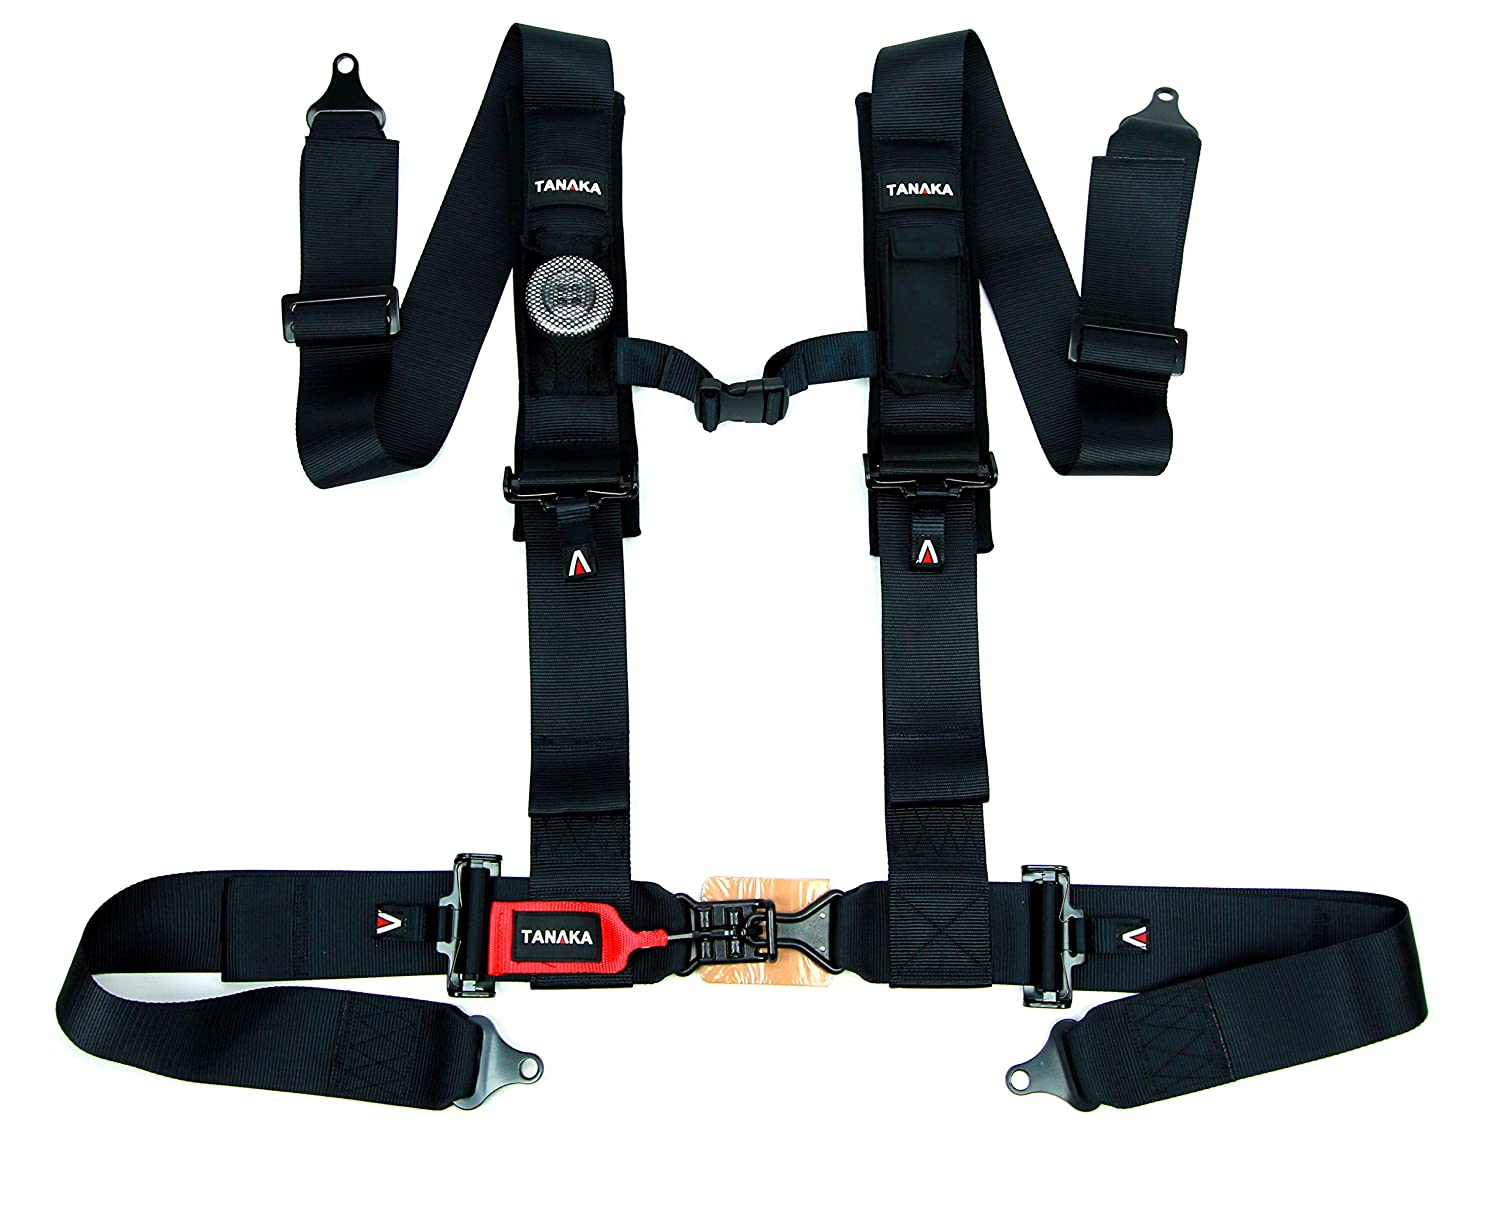 Black for one seat Tanaka Black Series Latch and Link Safety Harness Set with Ultra Comfort Heavy Duty Shoulder Pads 2 Red